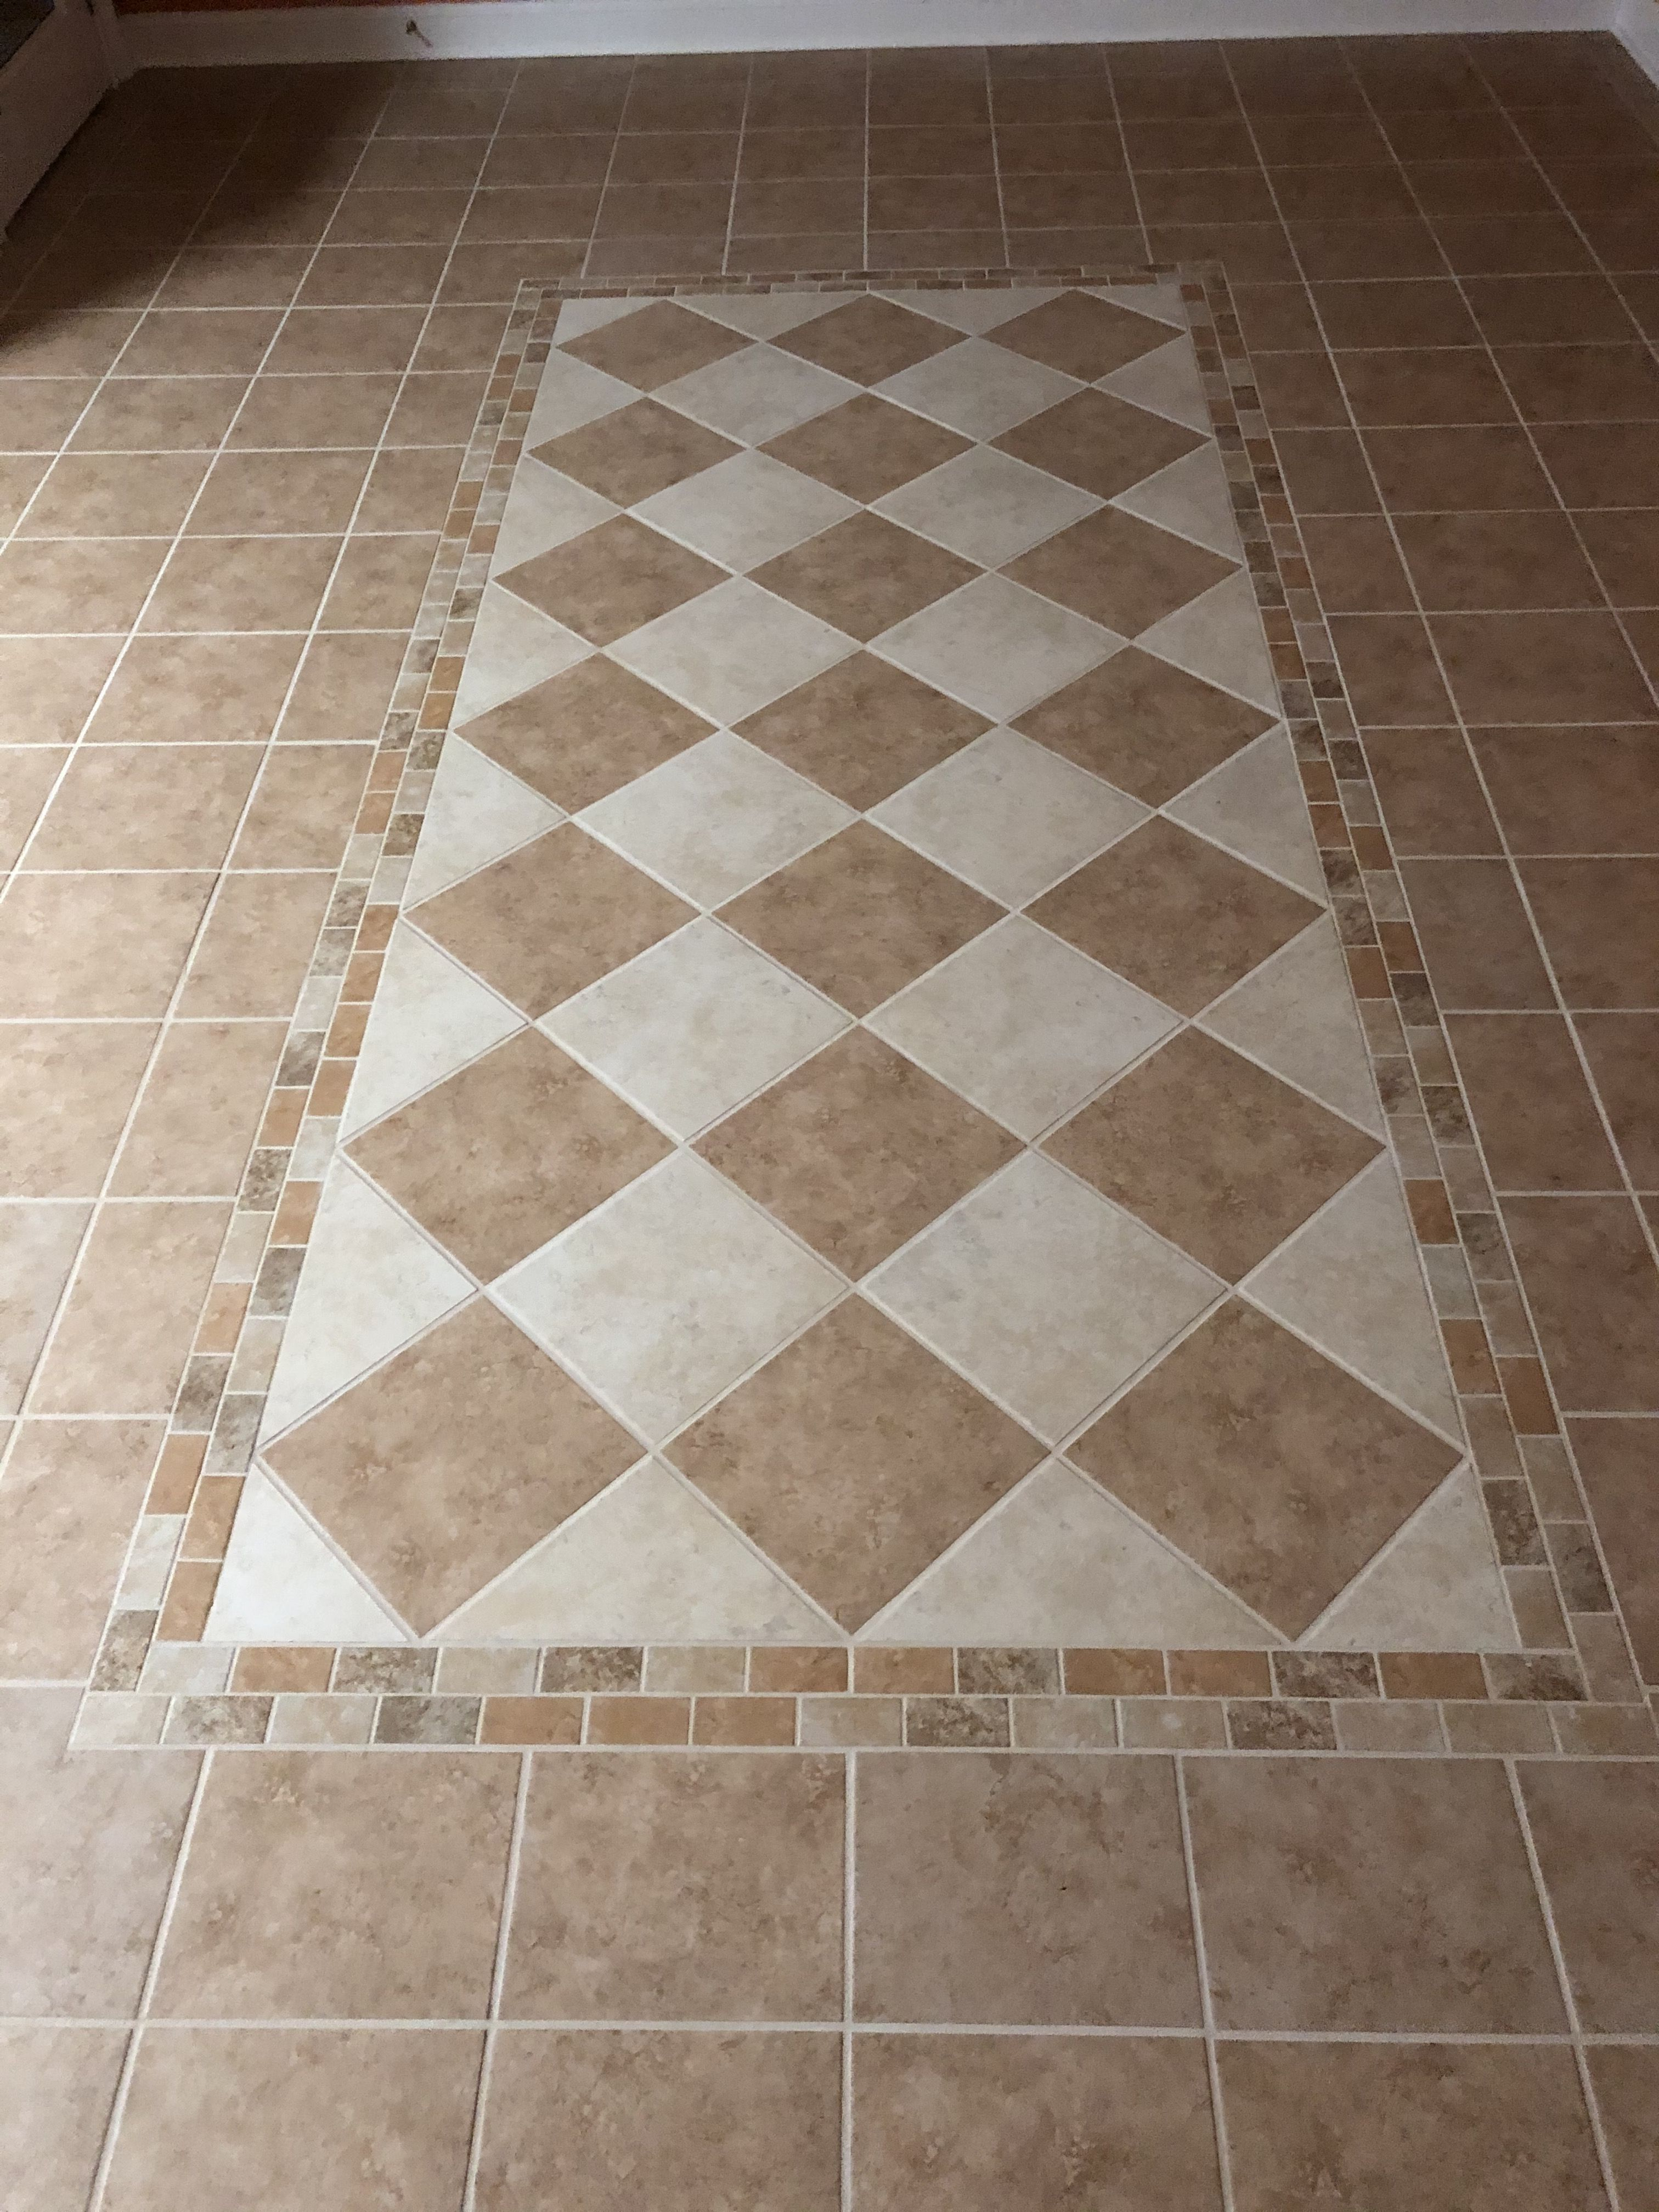 Idea By Carolyn On Patterned Floor Tiles In 2020 Patterned Floor Tiles Floor Patterns Decor